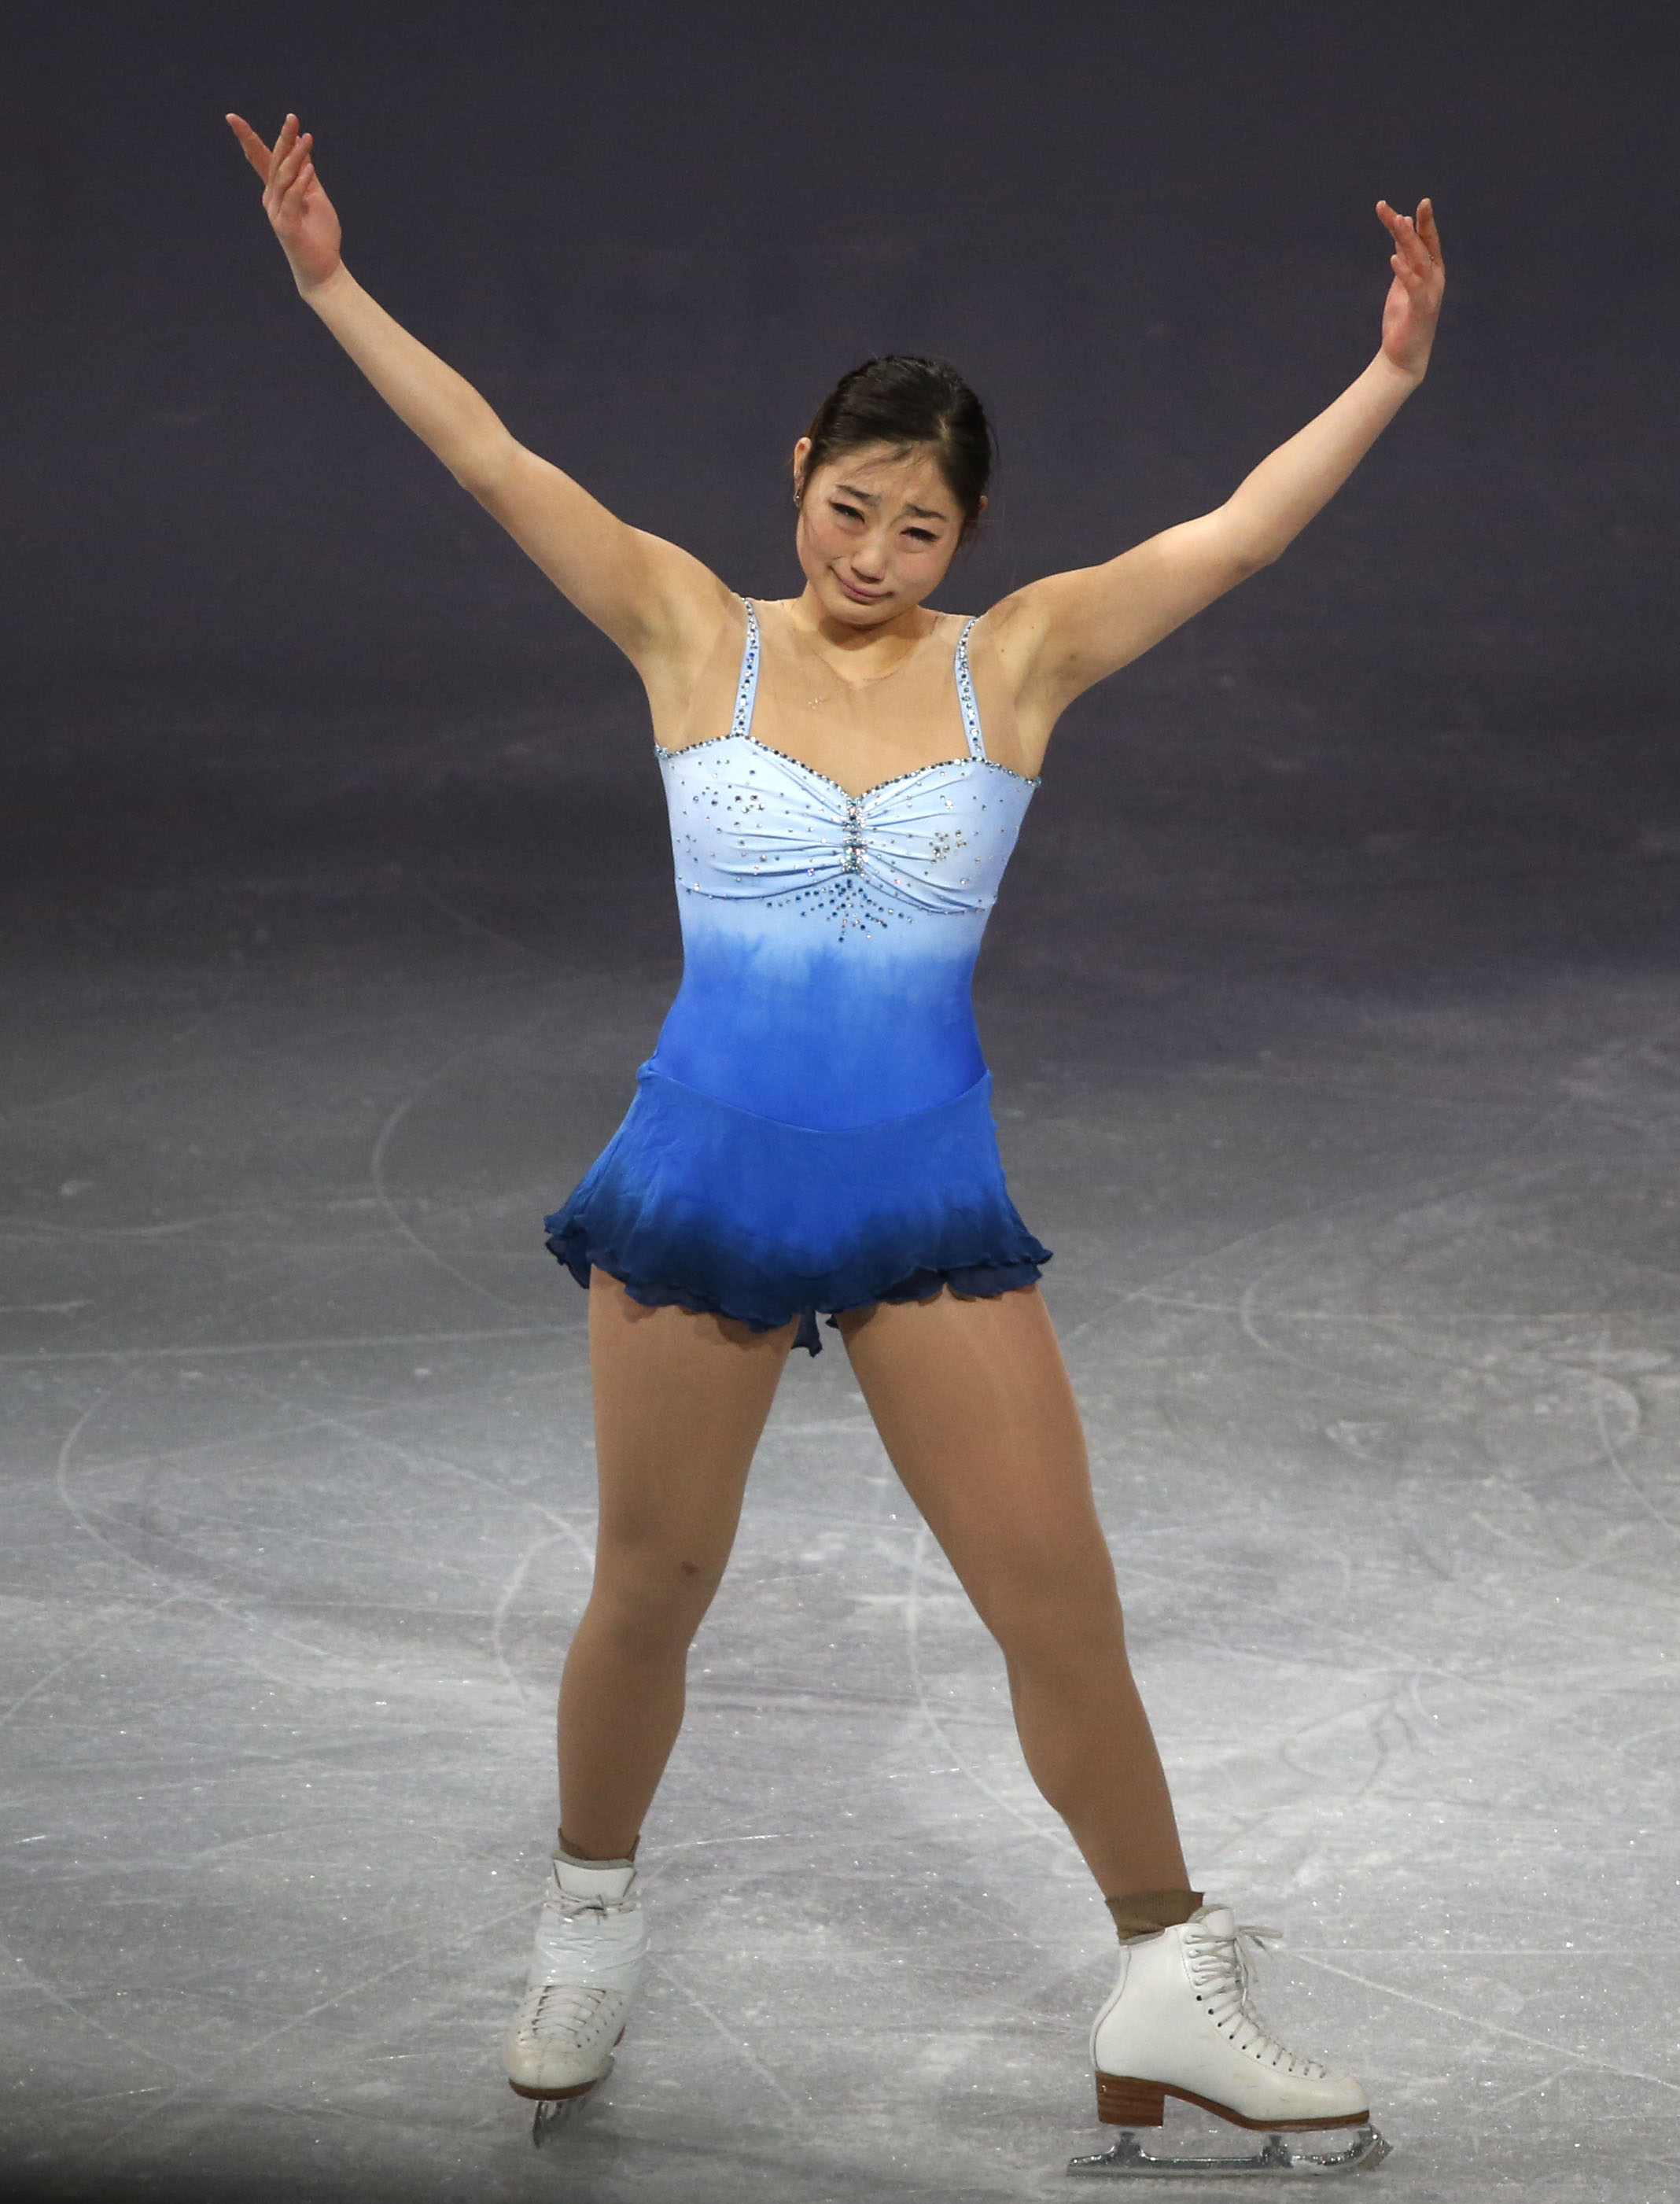 nagasu passed over for sochi despite thirdplace finish